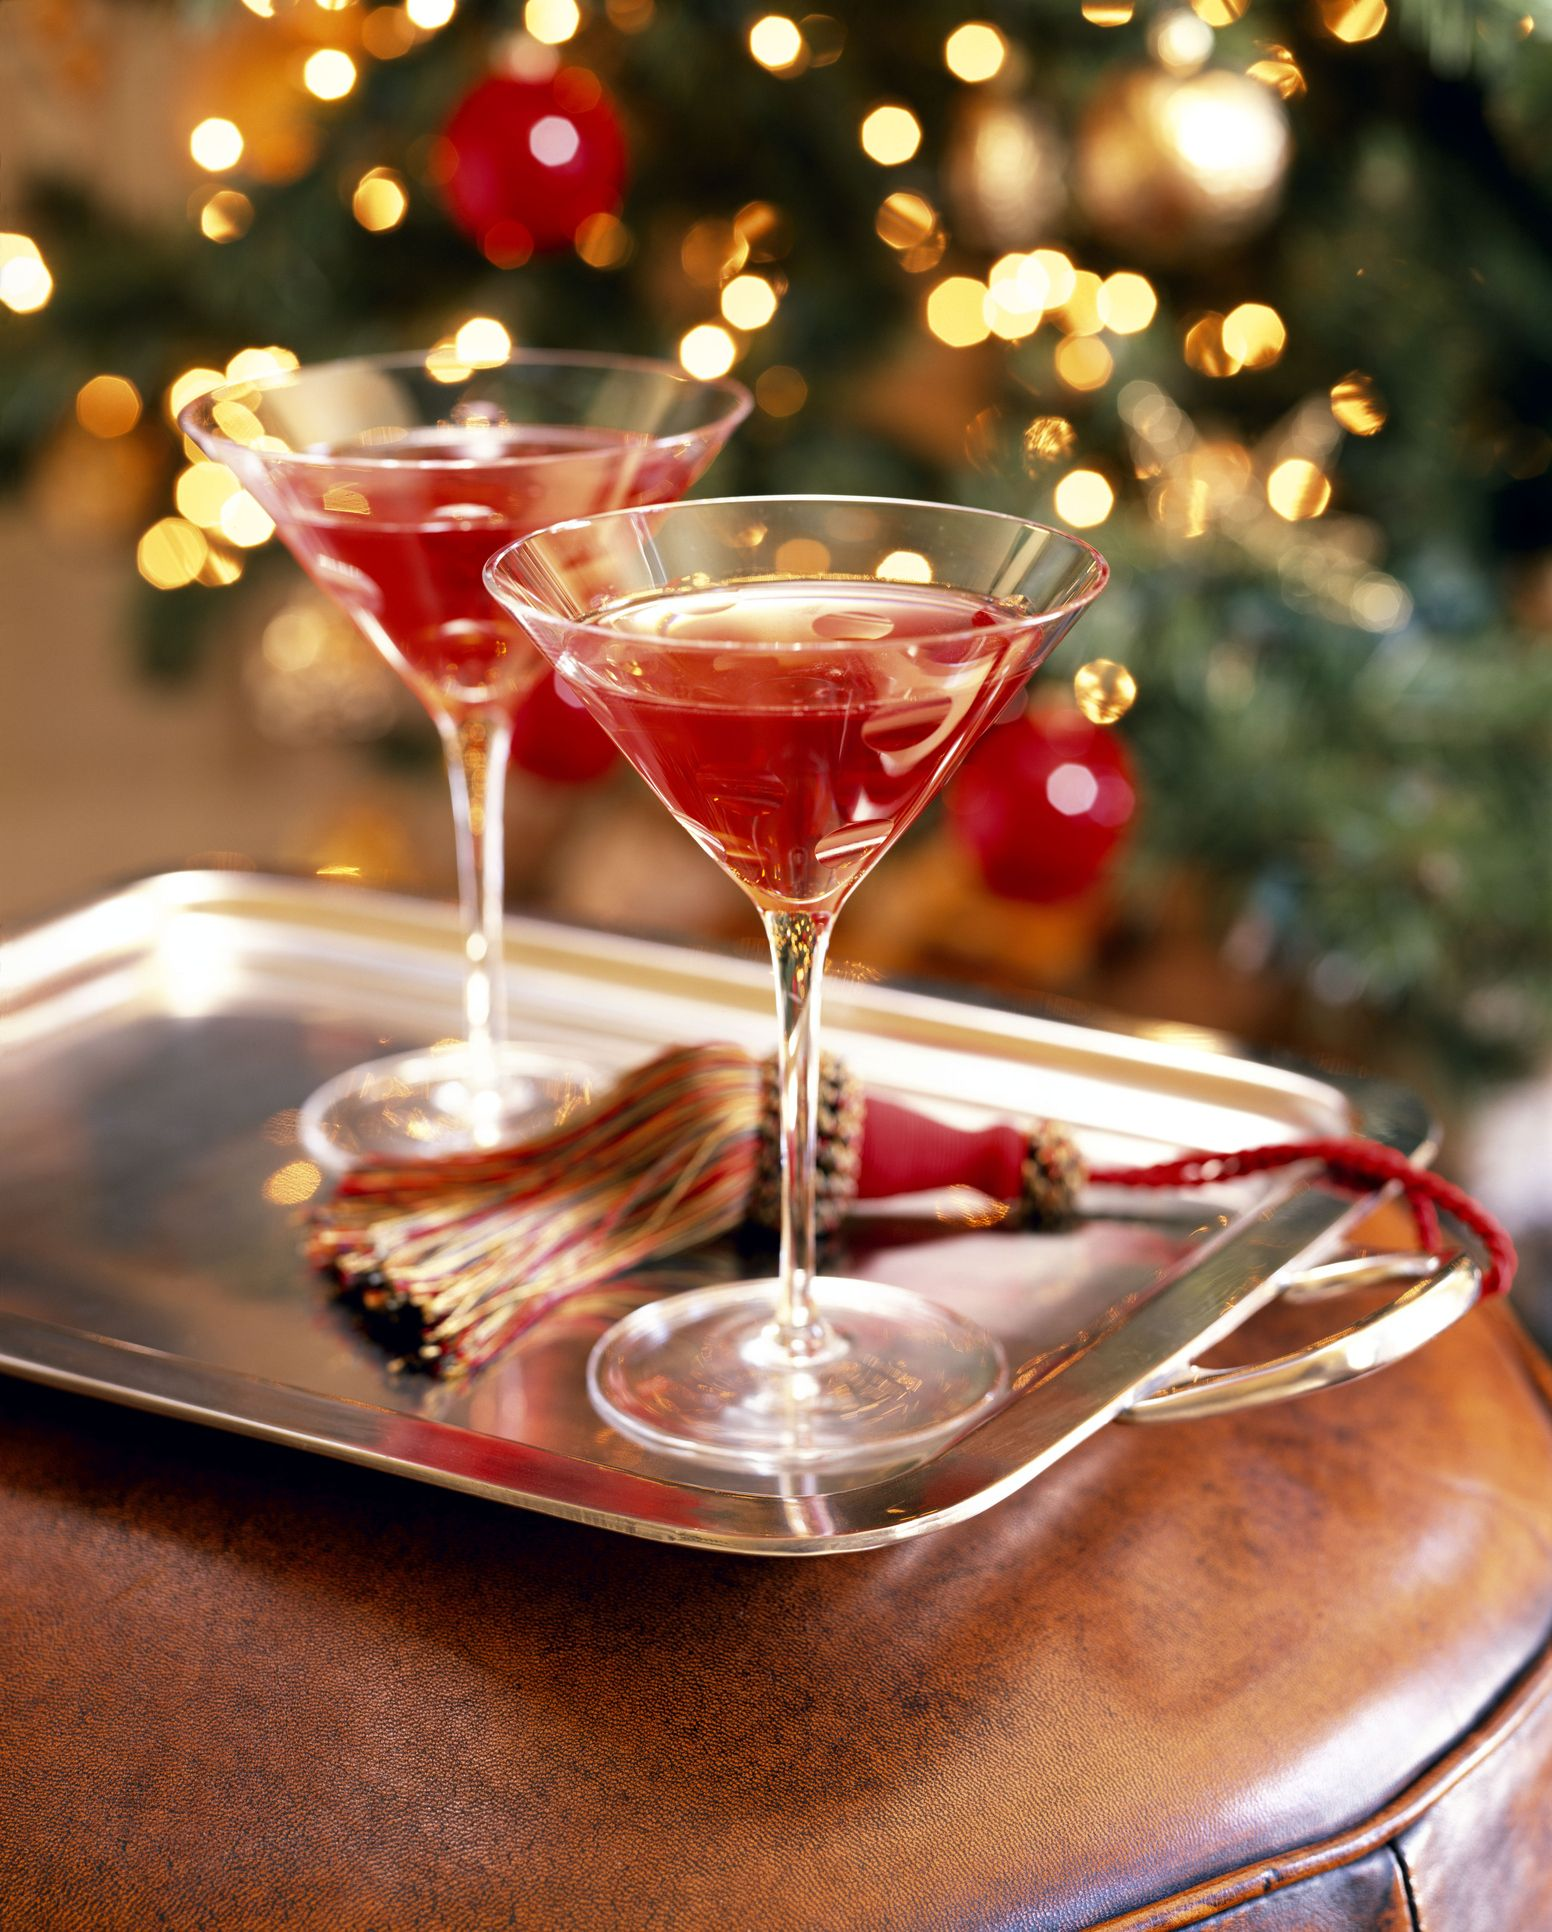 10 Best Non Alcoholic Christmas Drinks - Fun Holiday Mocktail Ideas